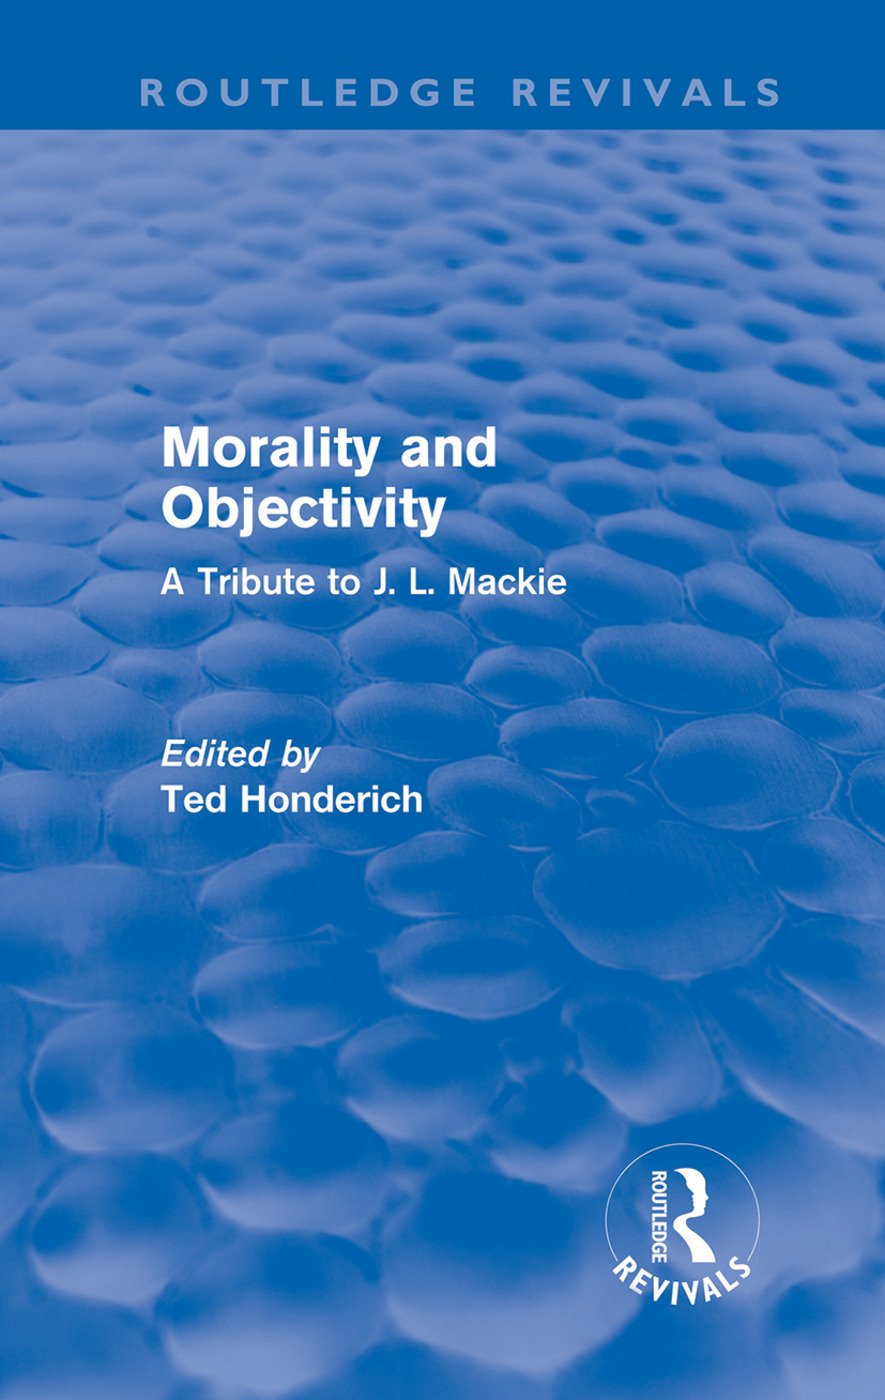 Morality and Objectivity (Routledge Revivals): A Tribute to J. L. Mackie book cover